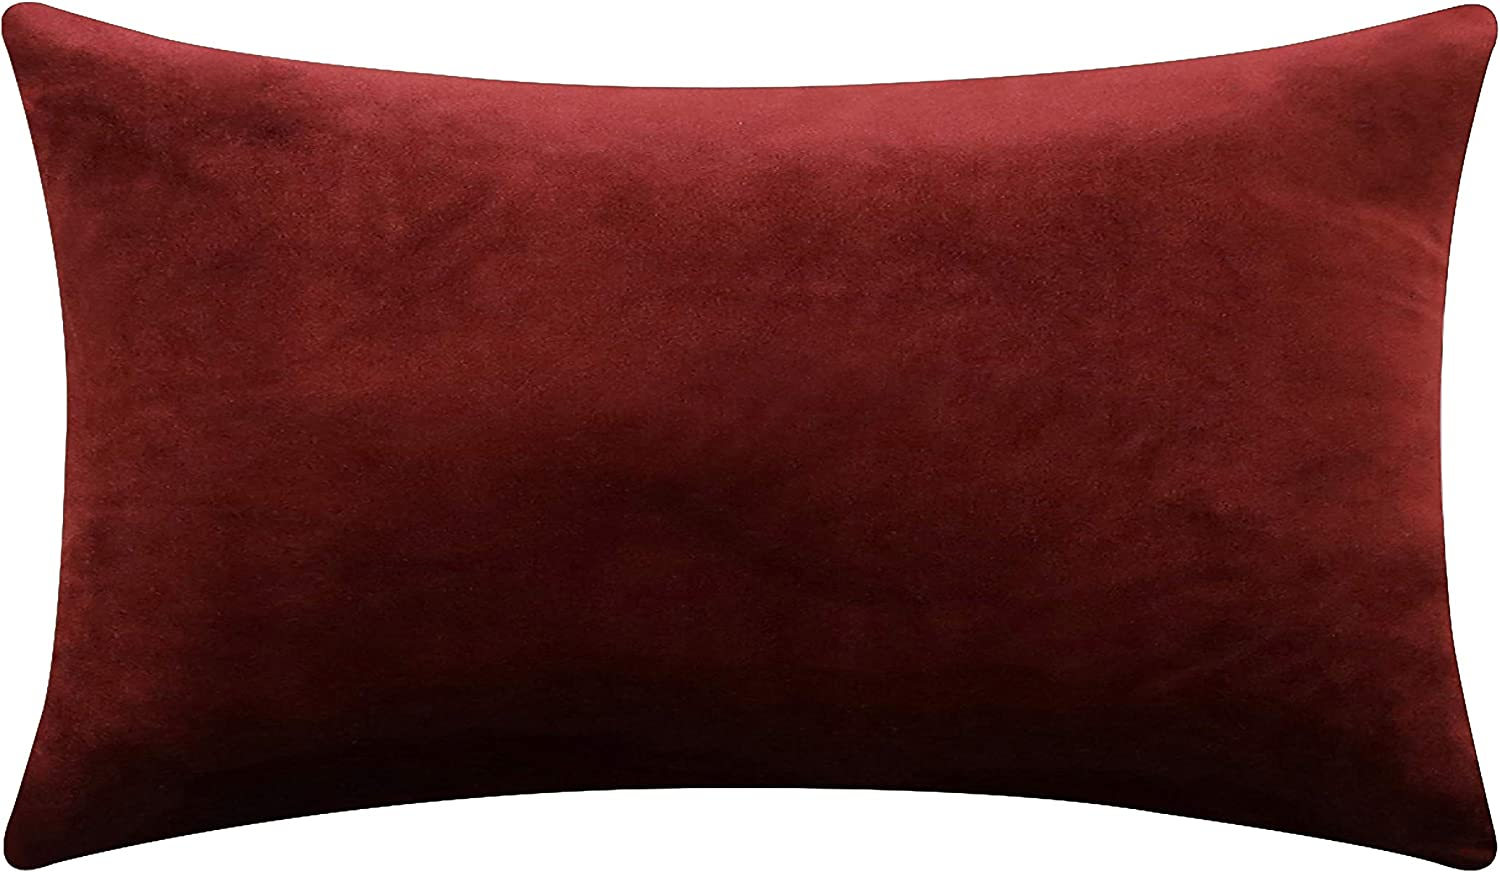 Home Brilliant Outdoor Lumbar Solid Throw Pillow Cover Decorative Cushion Cover for Patio Couch Neck Pain, 12 x 20 Inches (30x50cm), Brick Red